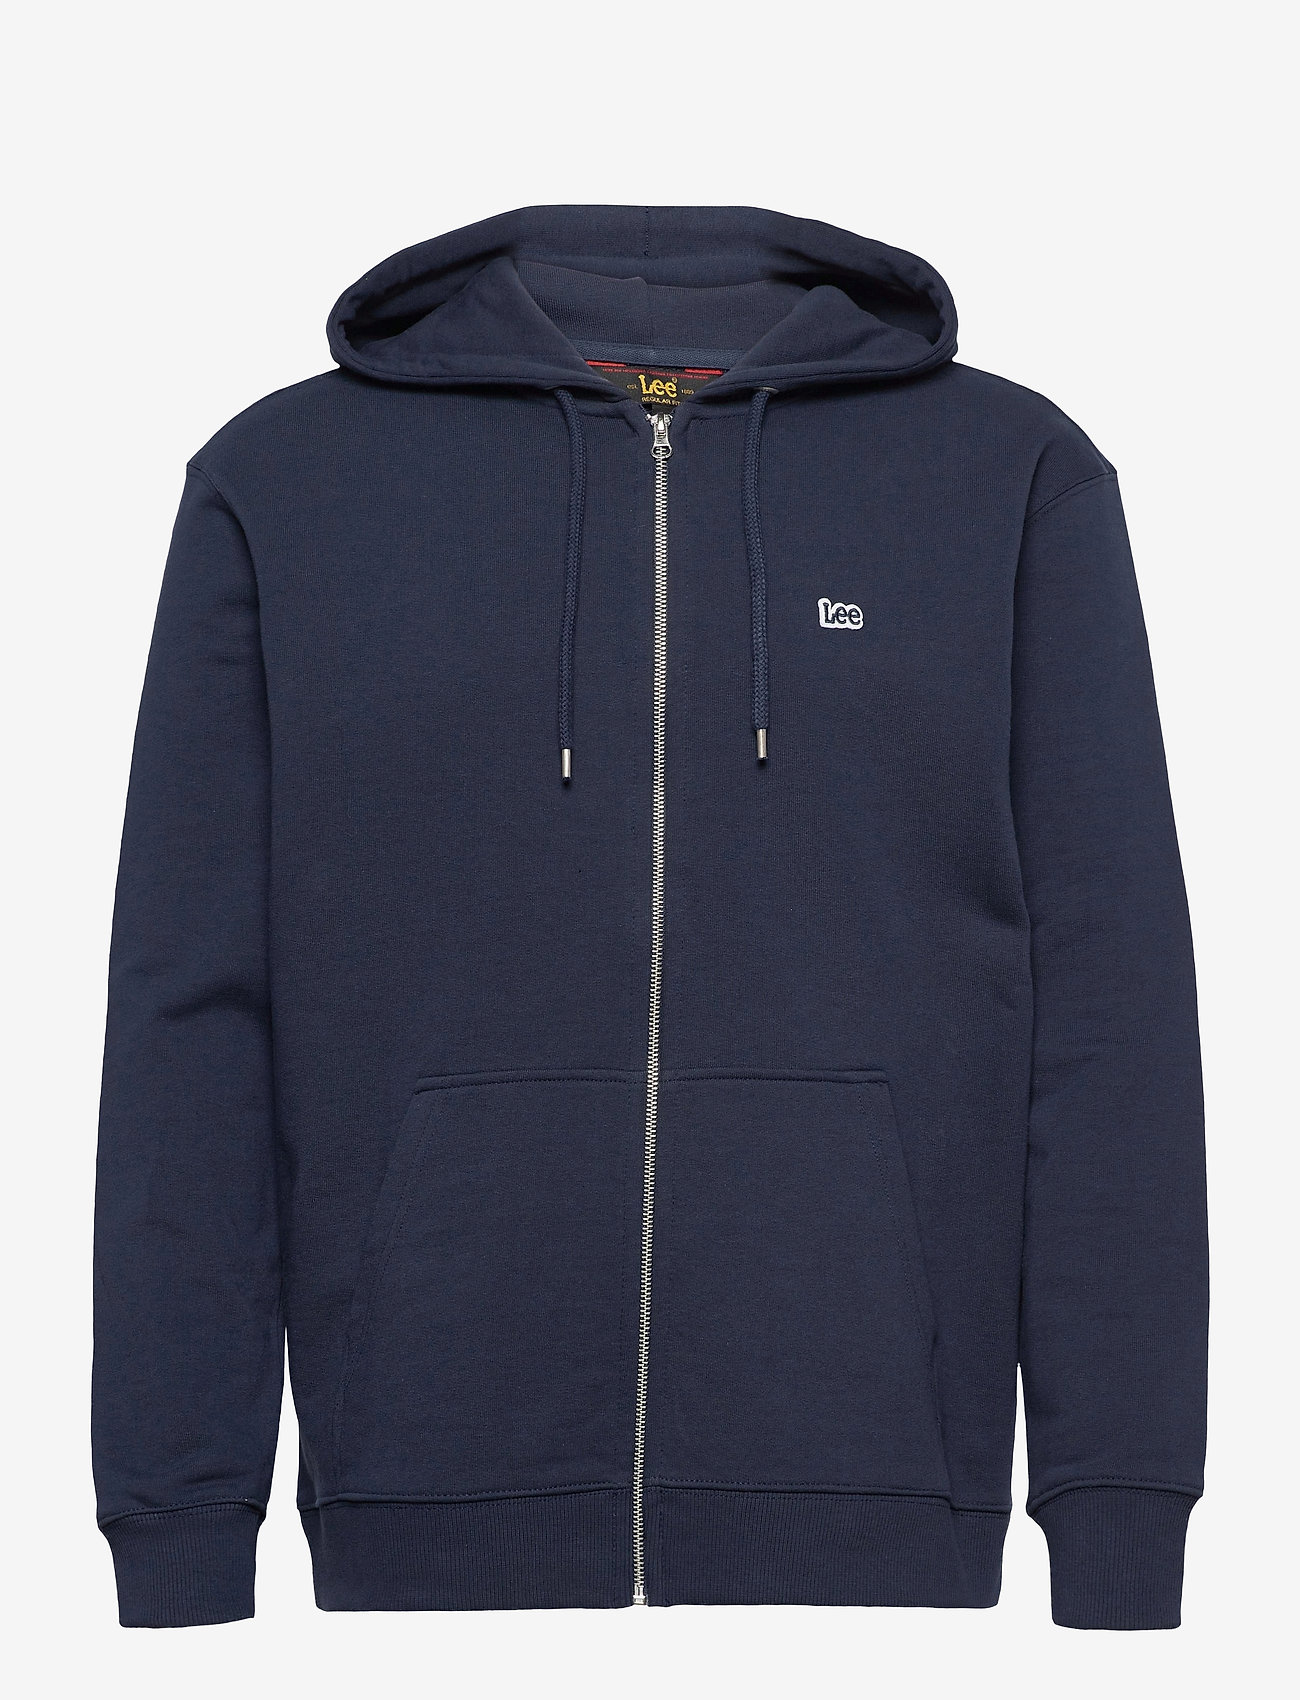 Lee Jeans - BASIC ZIP THROUGH HO - basic sweatshirts - navy - 0